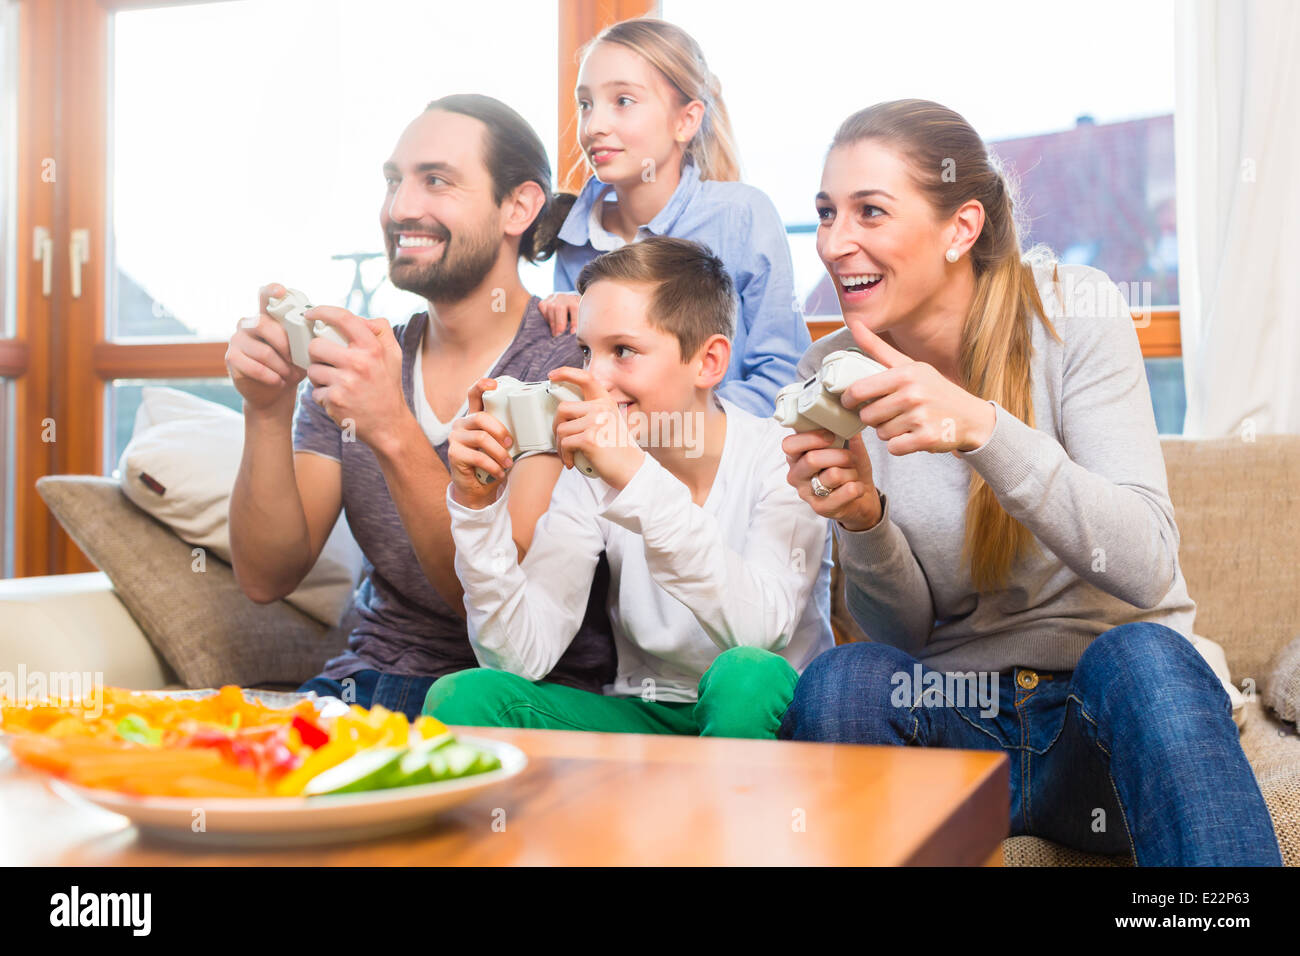 Family having leisure time together and playing with video game console - Stock Image